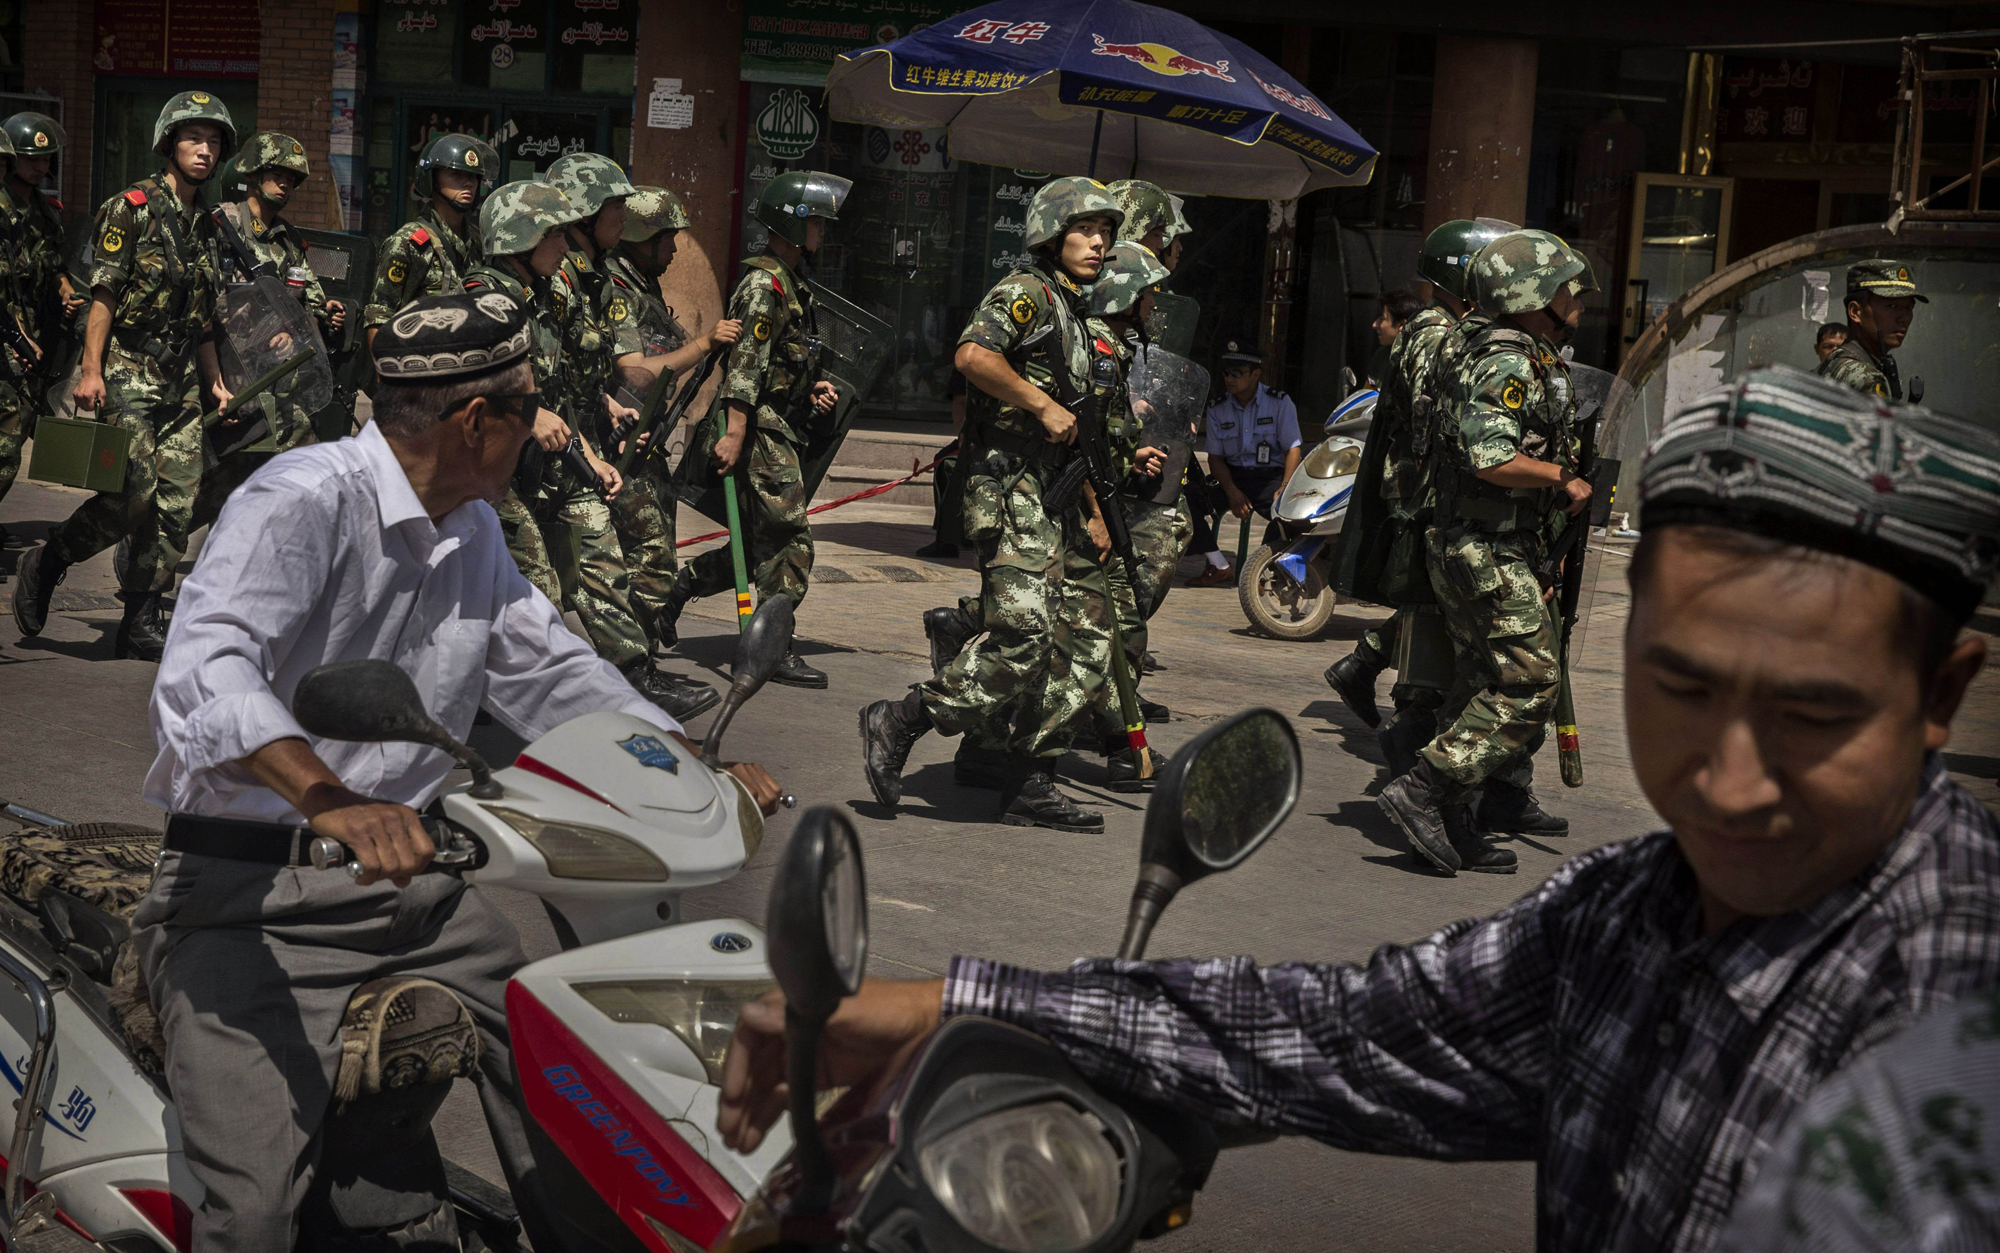 Chinese soldiers patrol in Kashgar, in Xinjiang Uighur Autonomous Region, on July 30, 2014